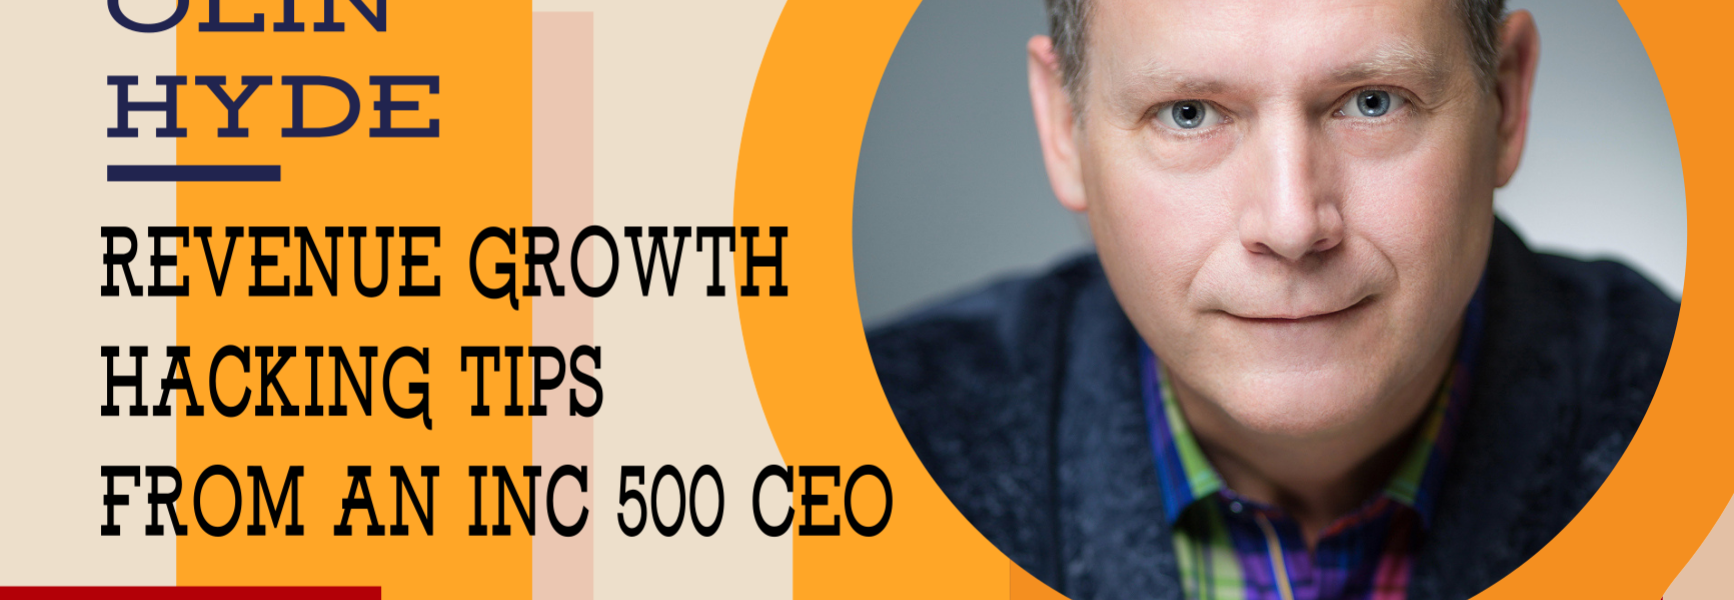 Revenue Growth Hacking Tips from an INC 500 CEO with Olin Hyde